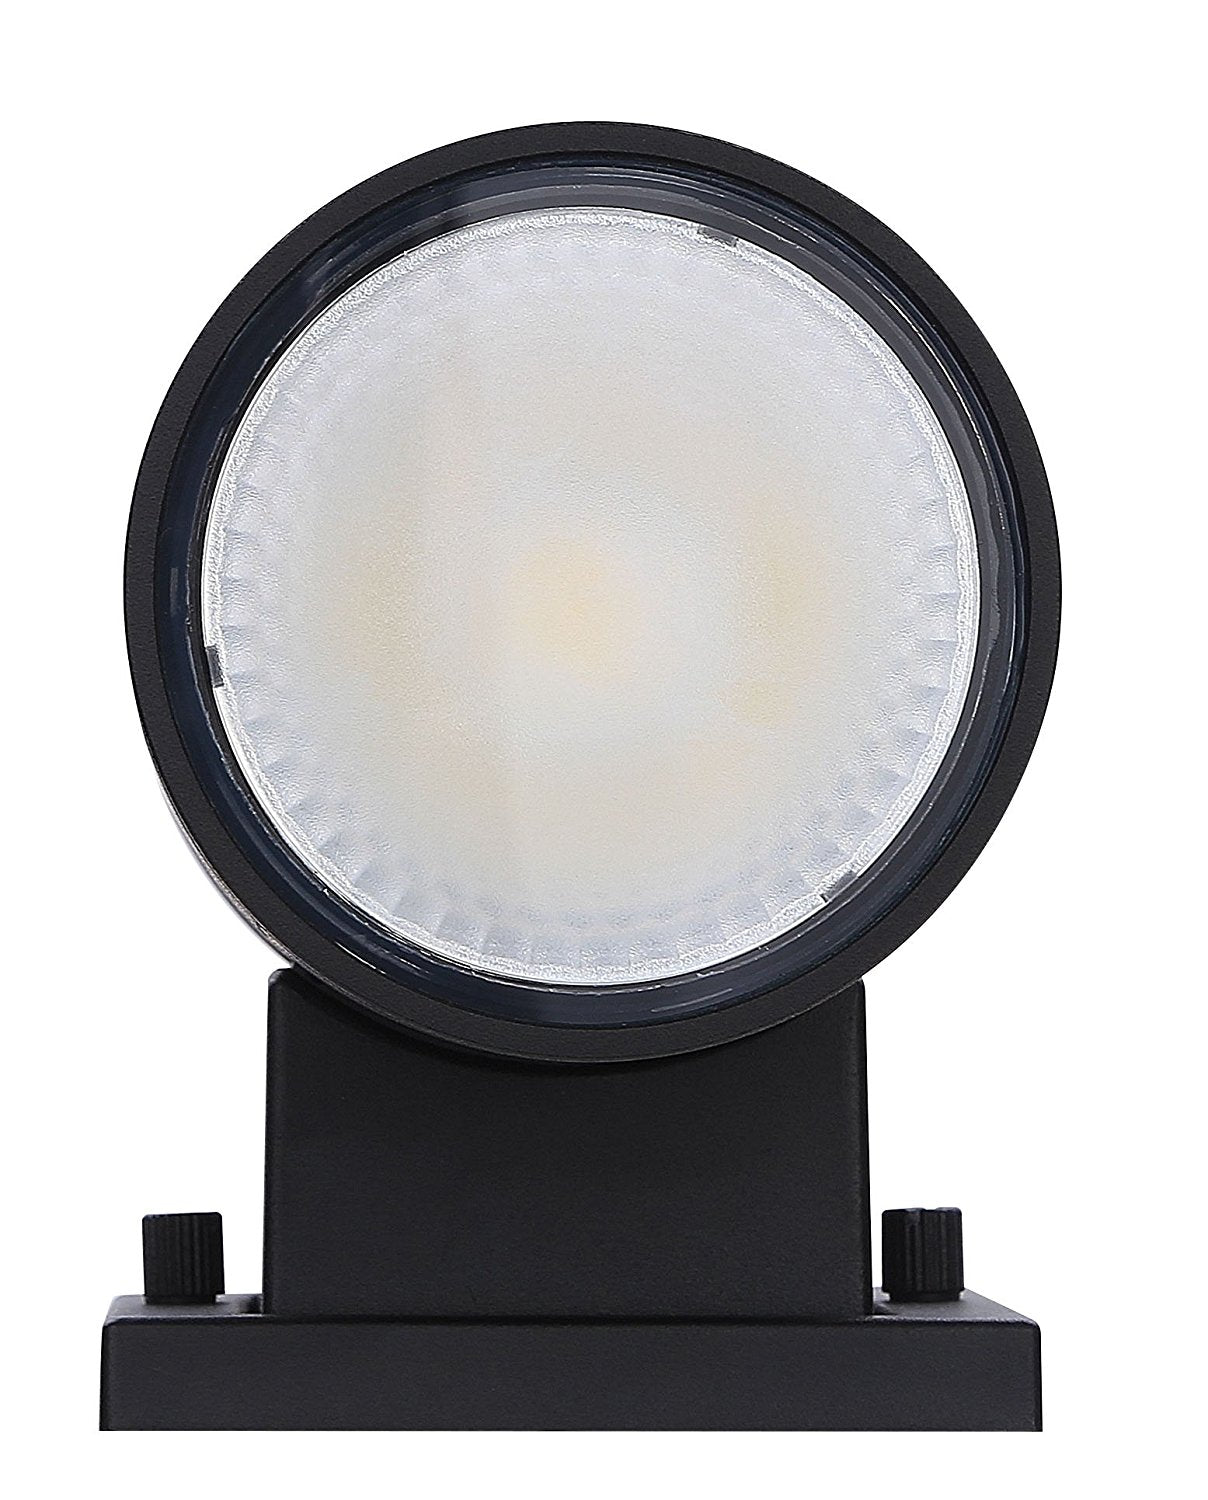 LED Outdoor Up & Down Porch Wall Light, 4-inch, 20W, Black Finish, Day light (5000K)